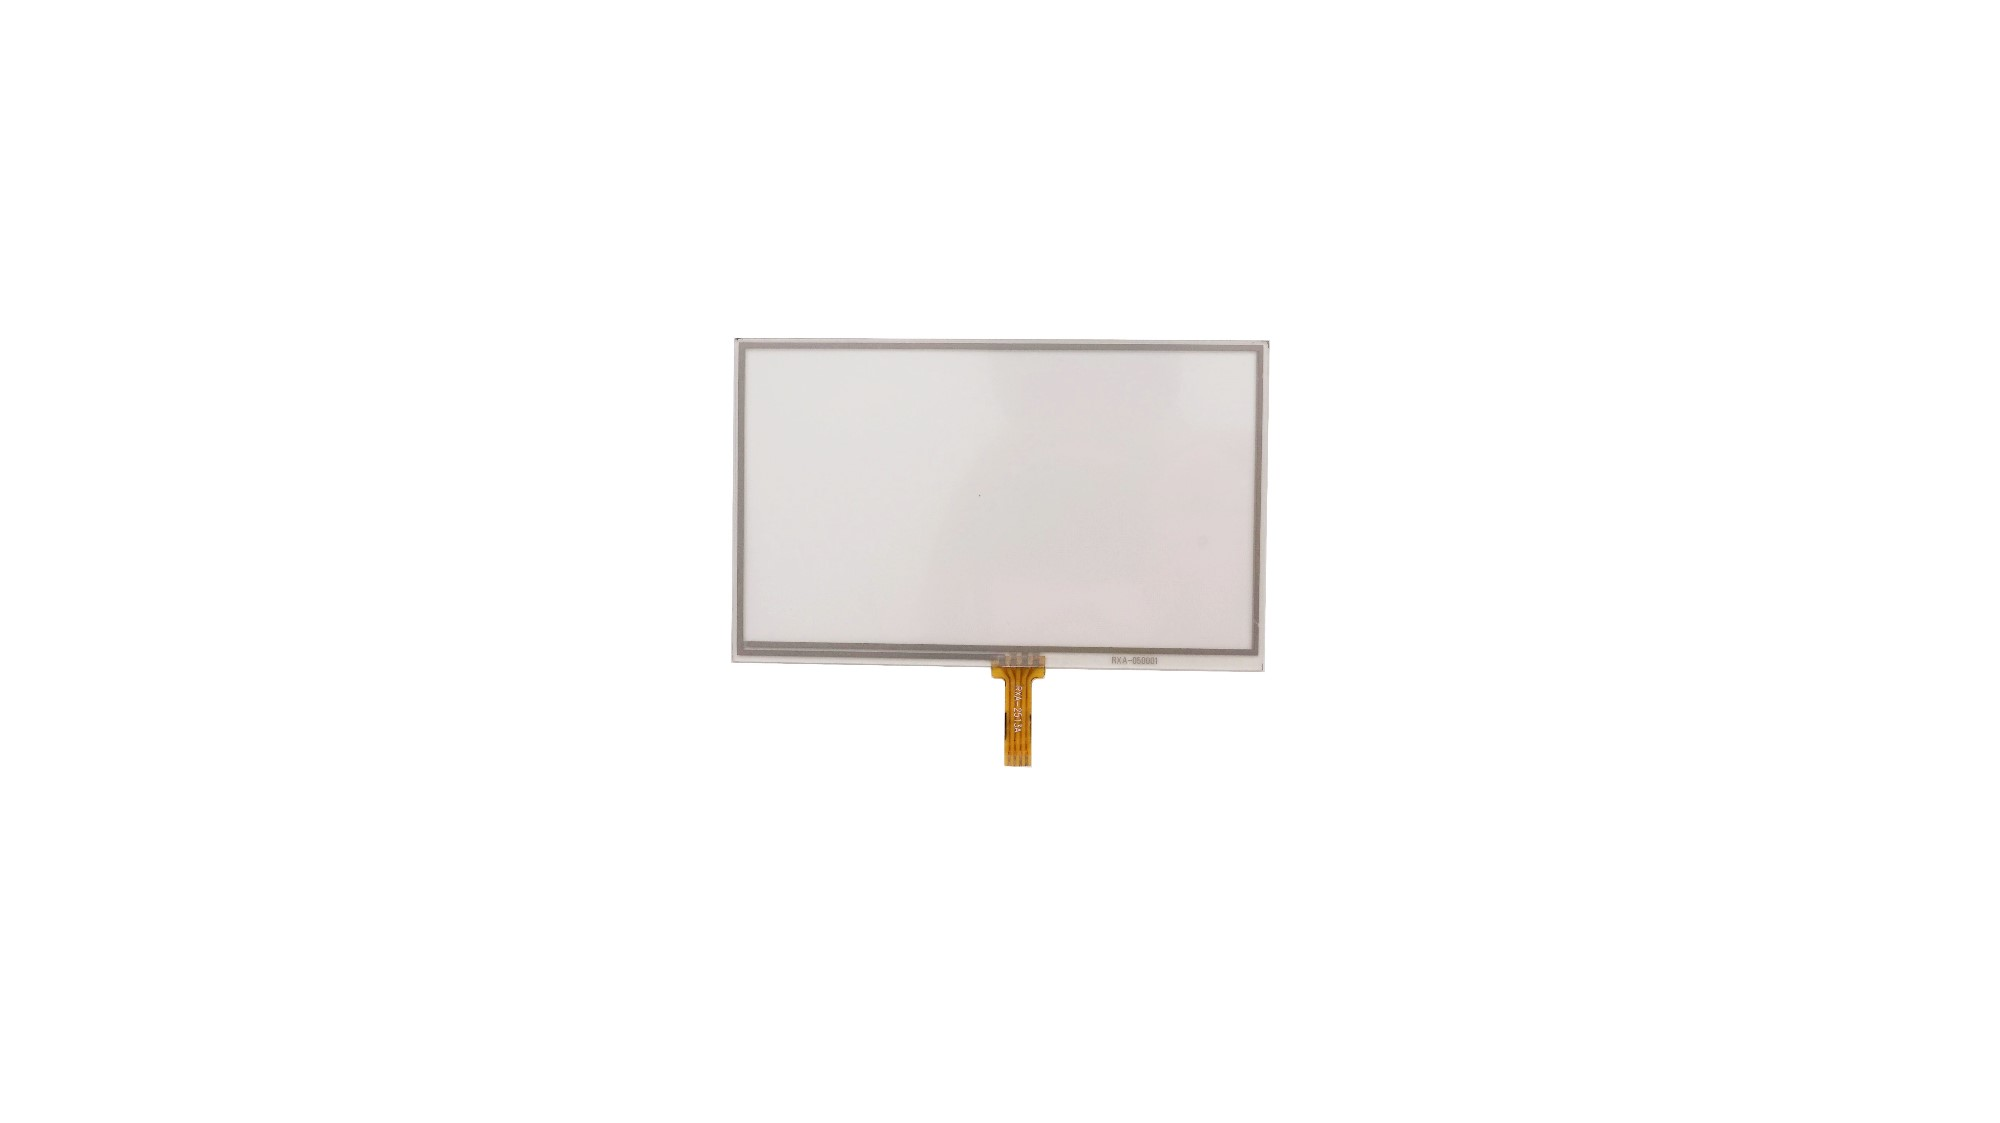 5.0 Inch 4wire Rtp Overlay Glass Touch Screen